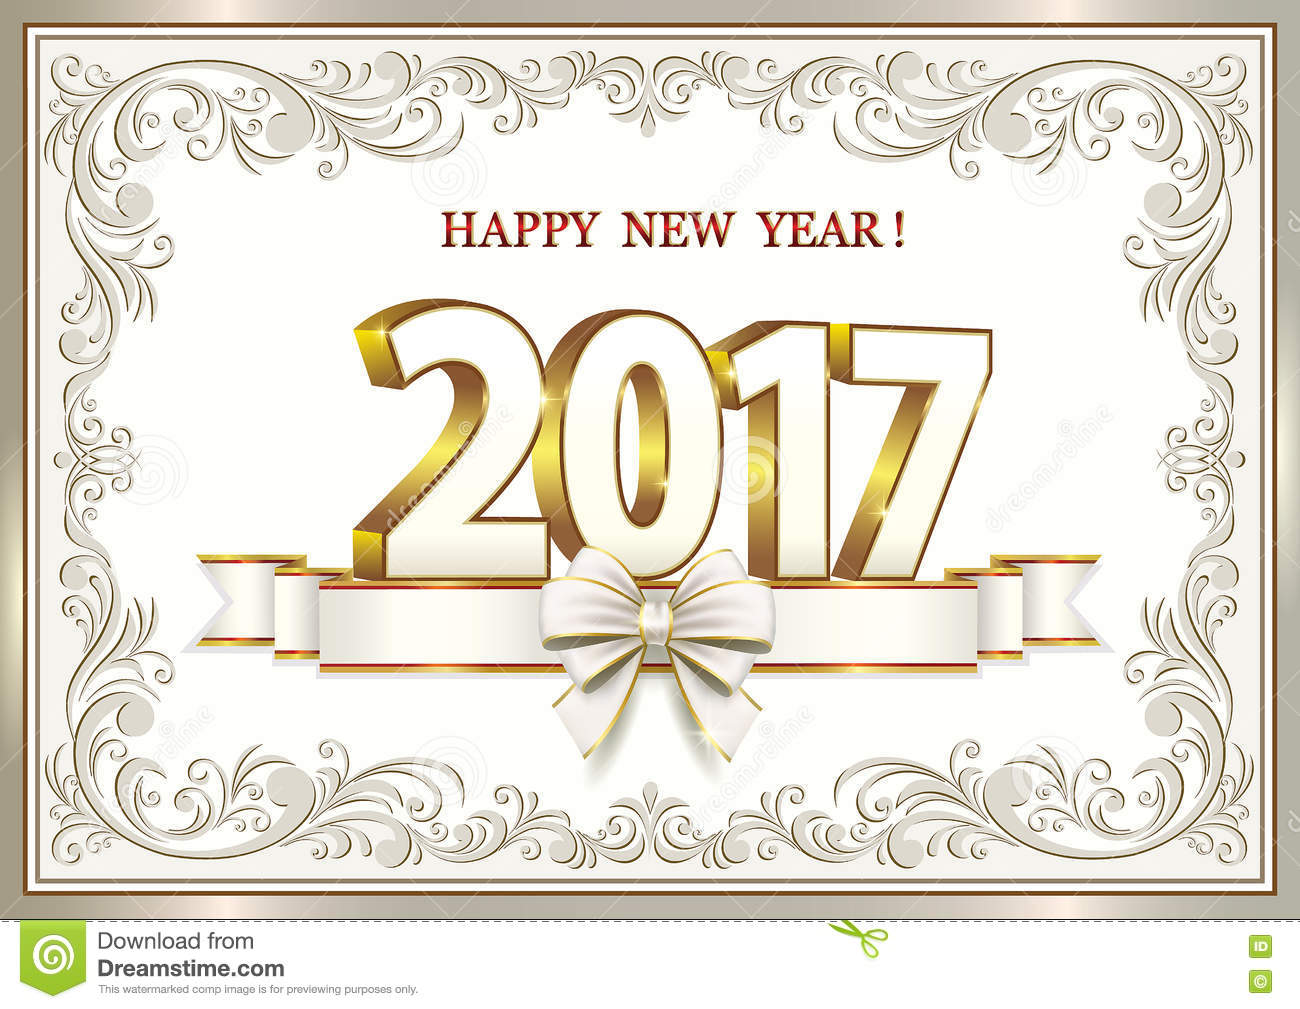 Elegant Download Happy New Year 2017 Stock Vector. Illustration Of Frame   72552343